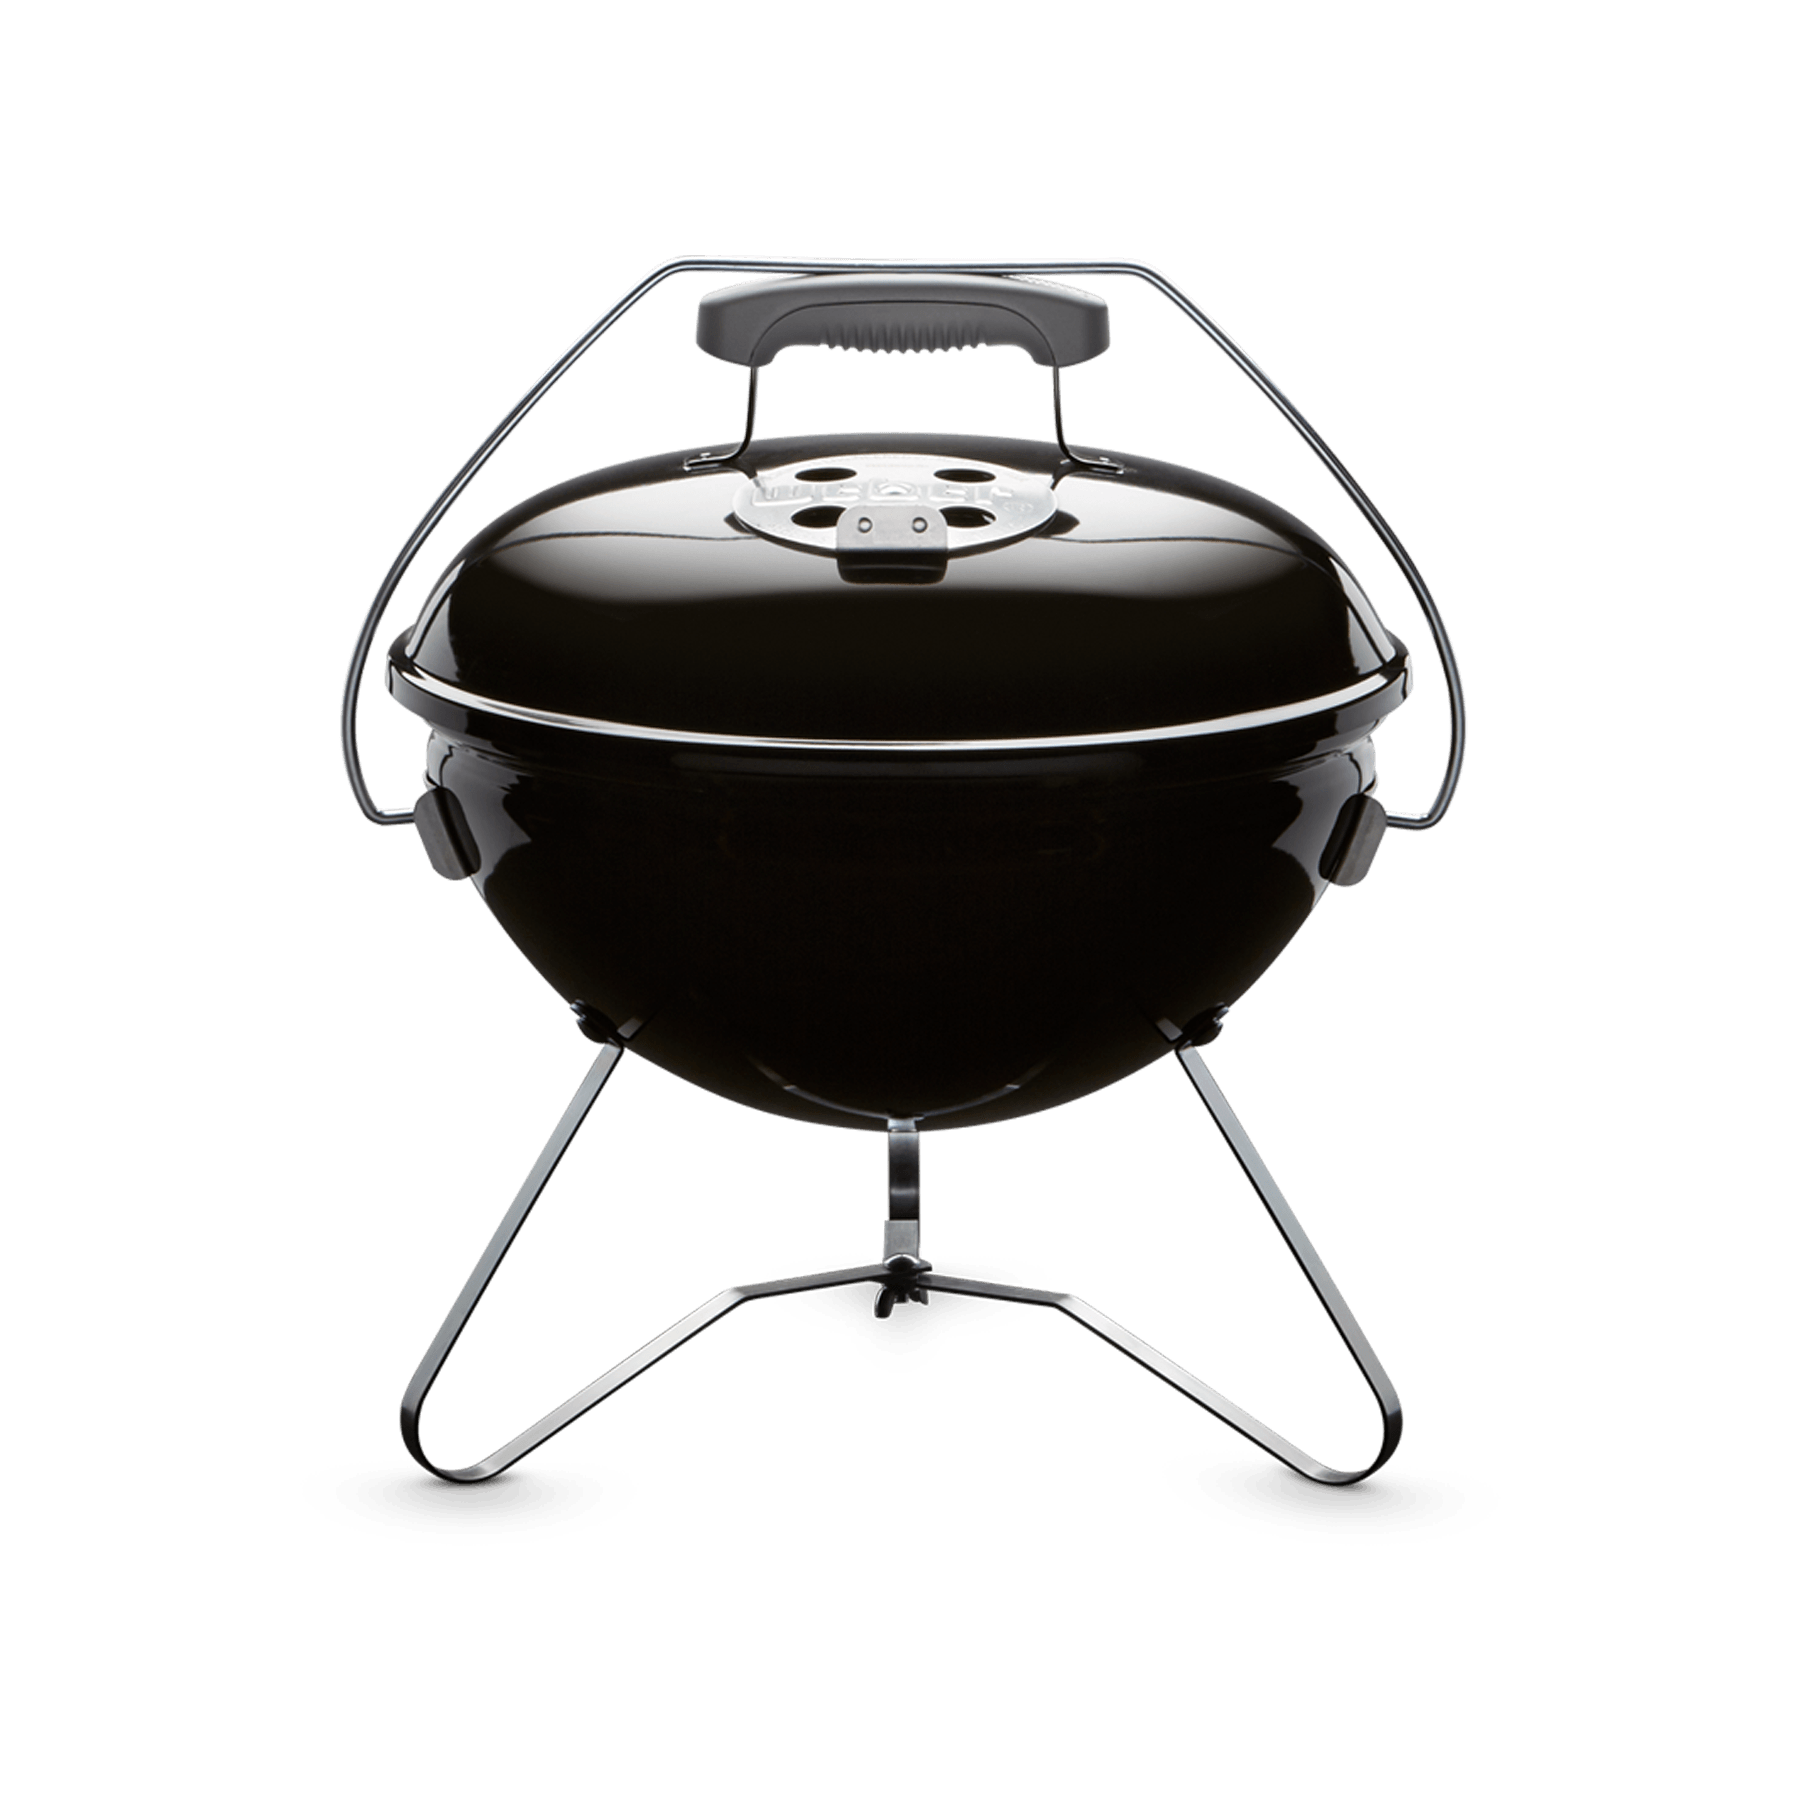 weber smokey joe premium portable charcoal grill. Black Bedroom Furniture Sets. Home Design Ideas